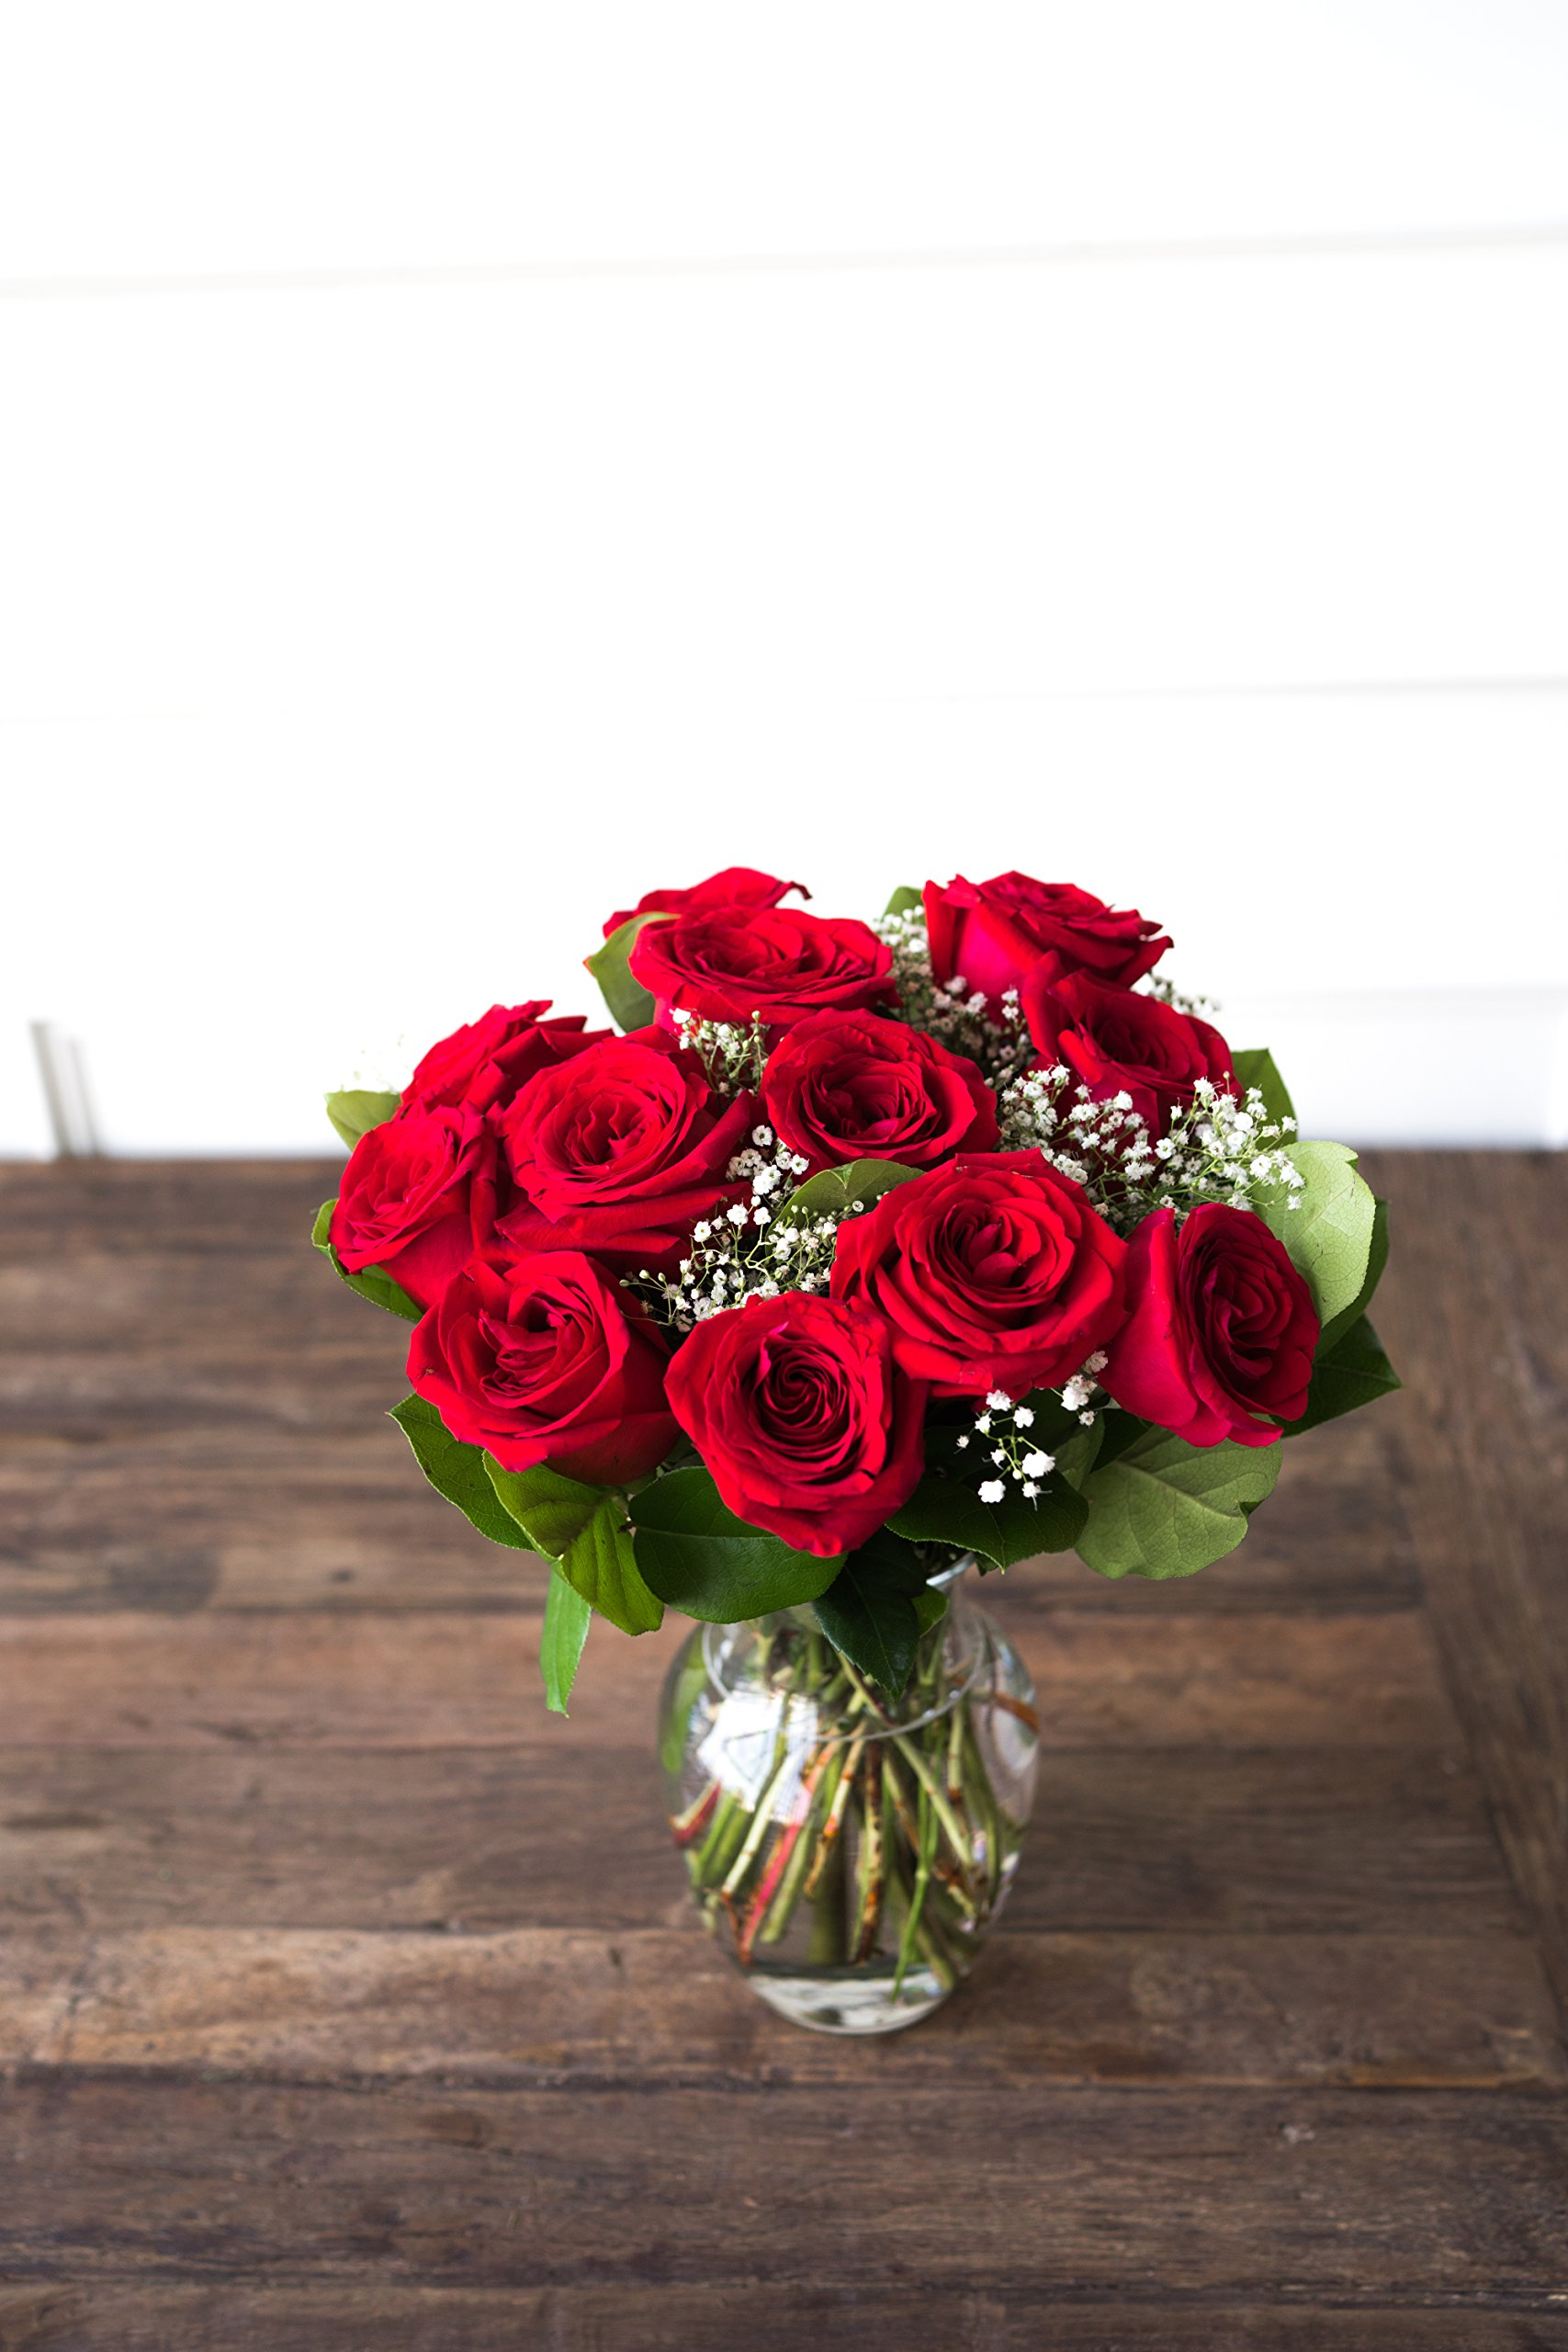 Flowers - One Dozen Long Stemmed Red Roses (Free Vase Included) by From You Flowers (Image #3)